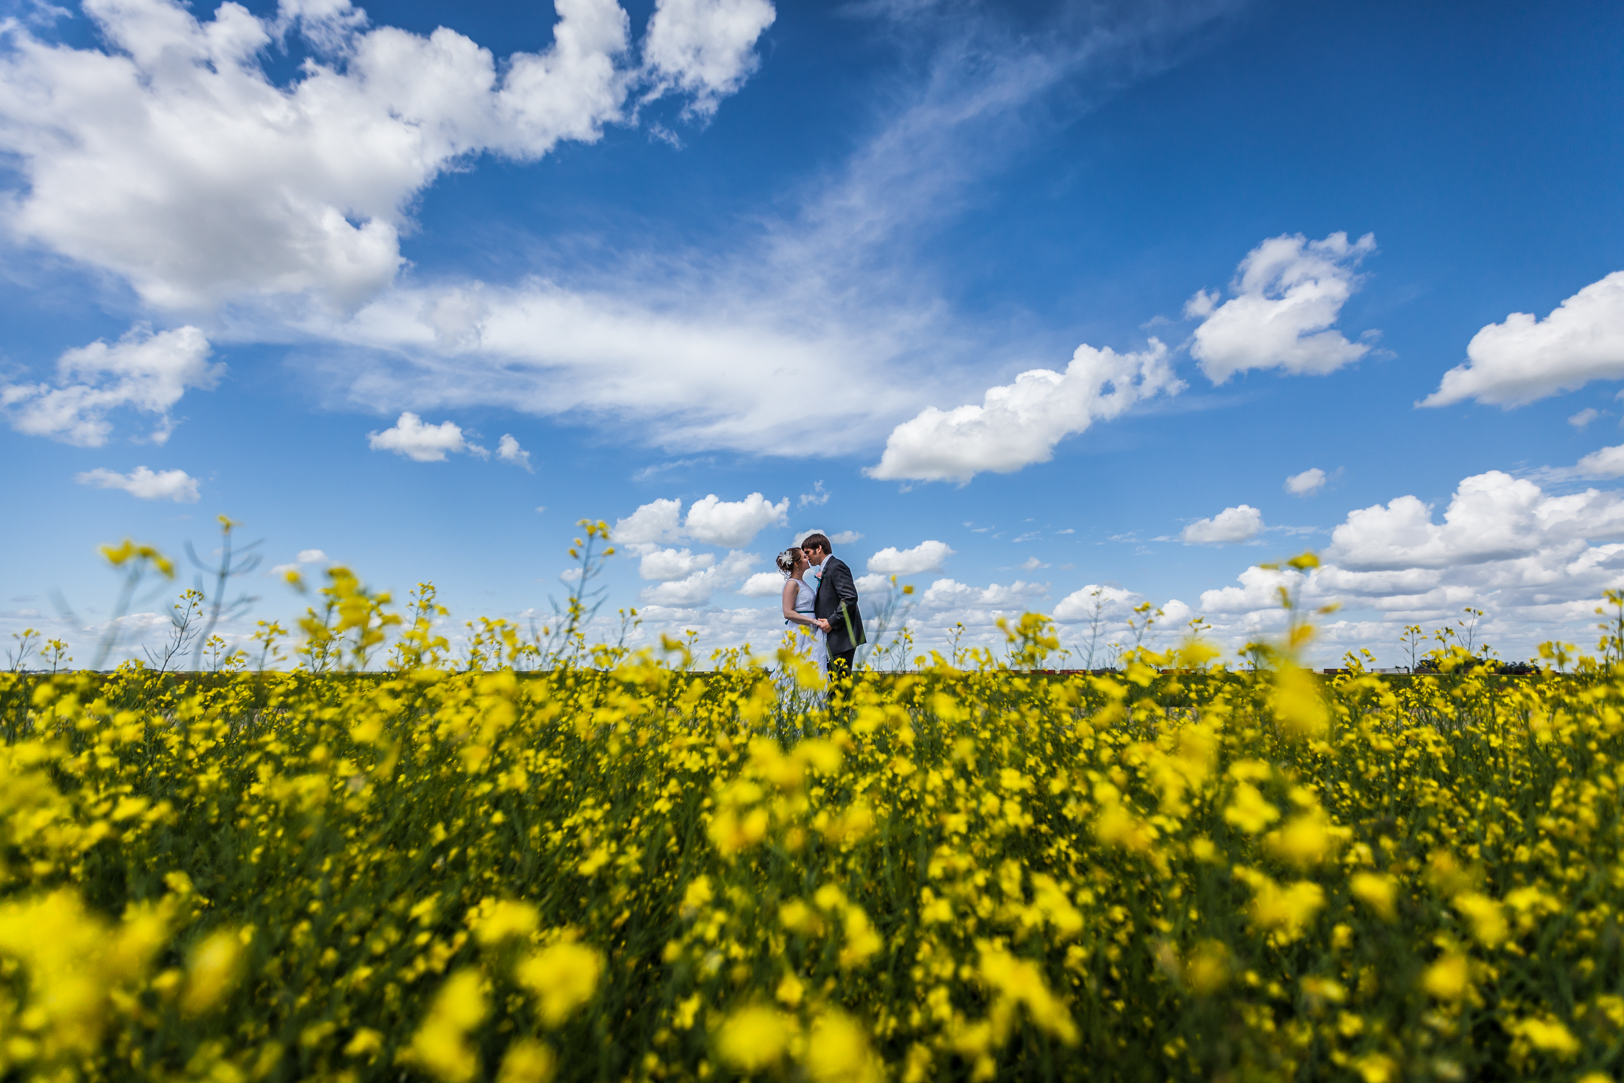 Wedding Photos in Canola Field